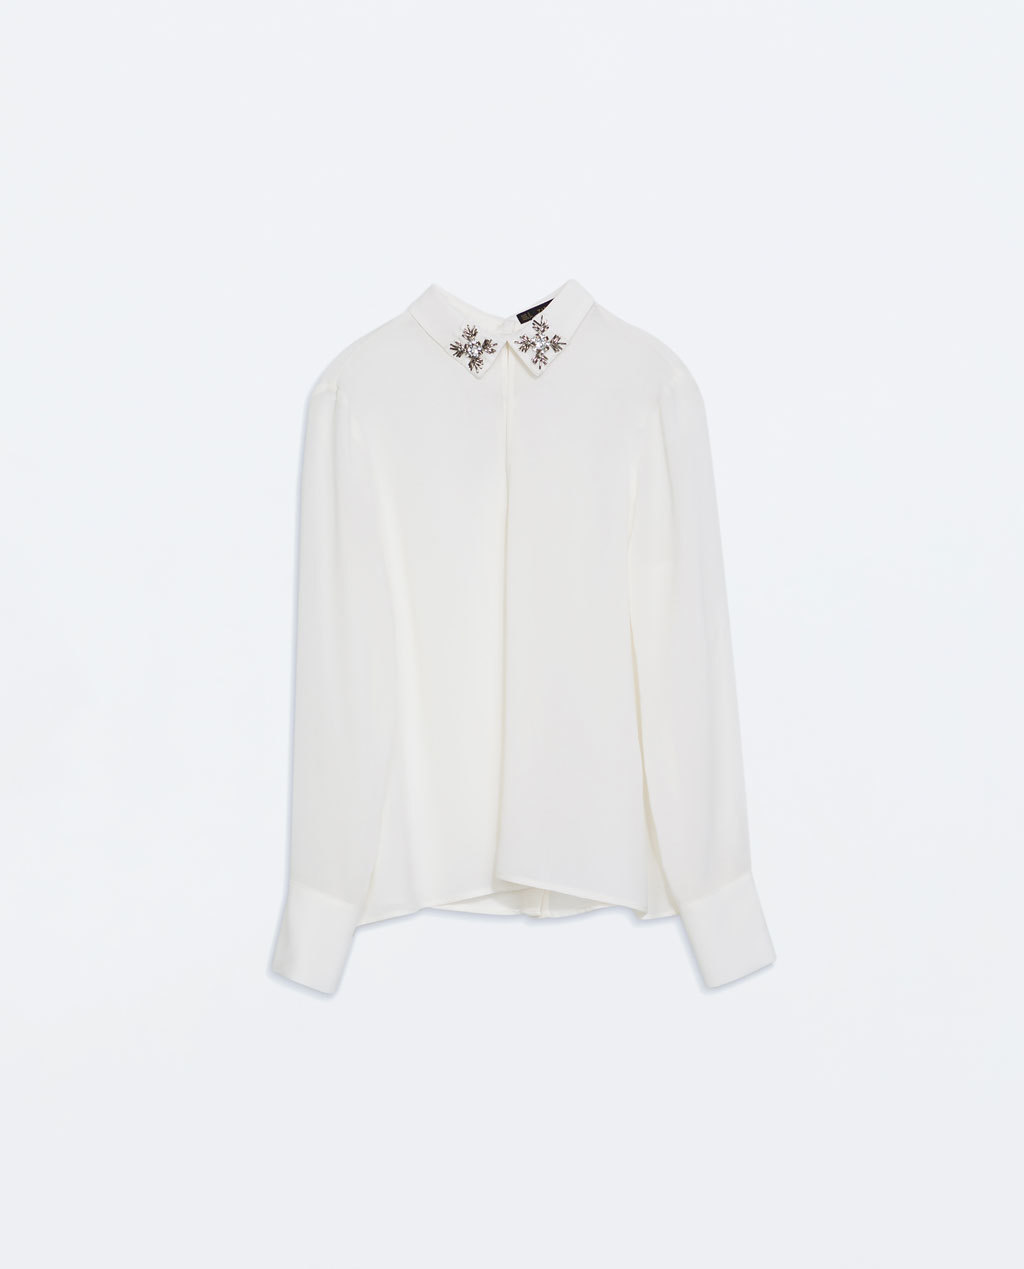 Blouse With Jewel AppliquÉ - neckline: shirt collar/peter pan/zip with opening; pattern: plain; style: blouse; predominant colour: ivory/cream; secondary colour: silver; occasions: evening, creative work; length: standard; fibres: polyester/polyamide - 100%; fit: straight cut; sleeve length: long sleeve; sleeve style: standard; texture group: sheer fabrics/chiffon/organza etc.; pattern type: fabric; embellishment: jewels/stone; season: a/w 2014; wardrobe: highlight; embellishment location: neck